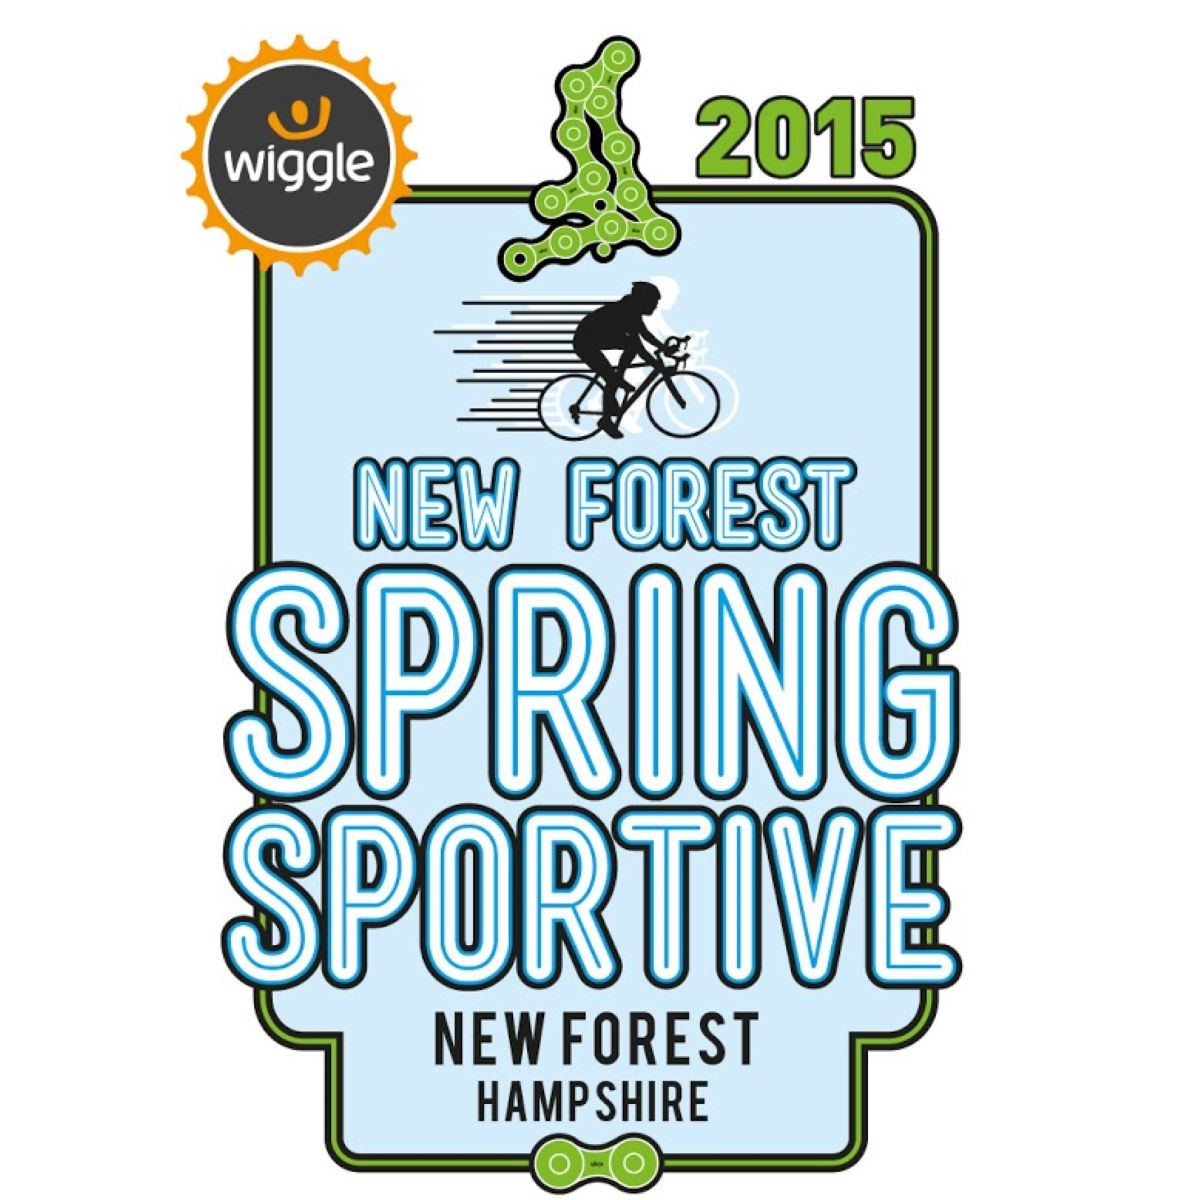 Wiggle Super Series New Forest Spring Sportive 2015